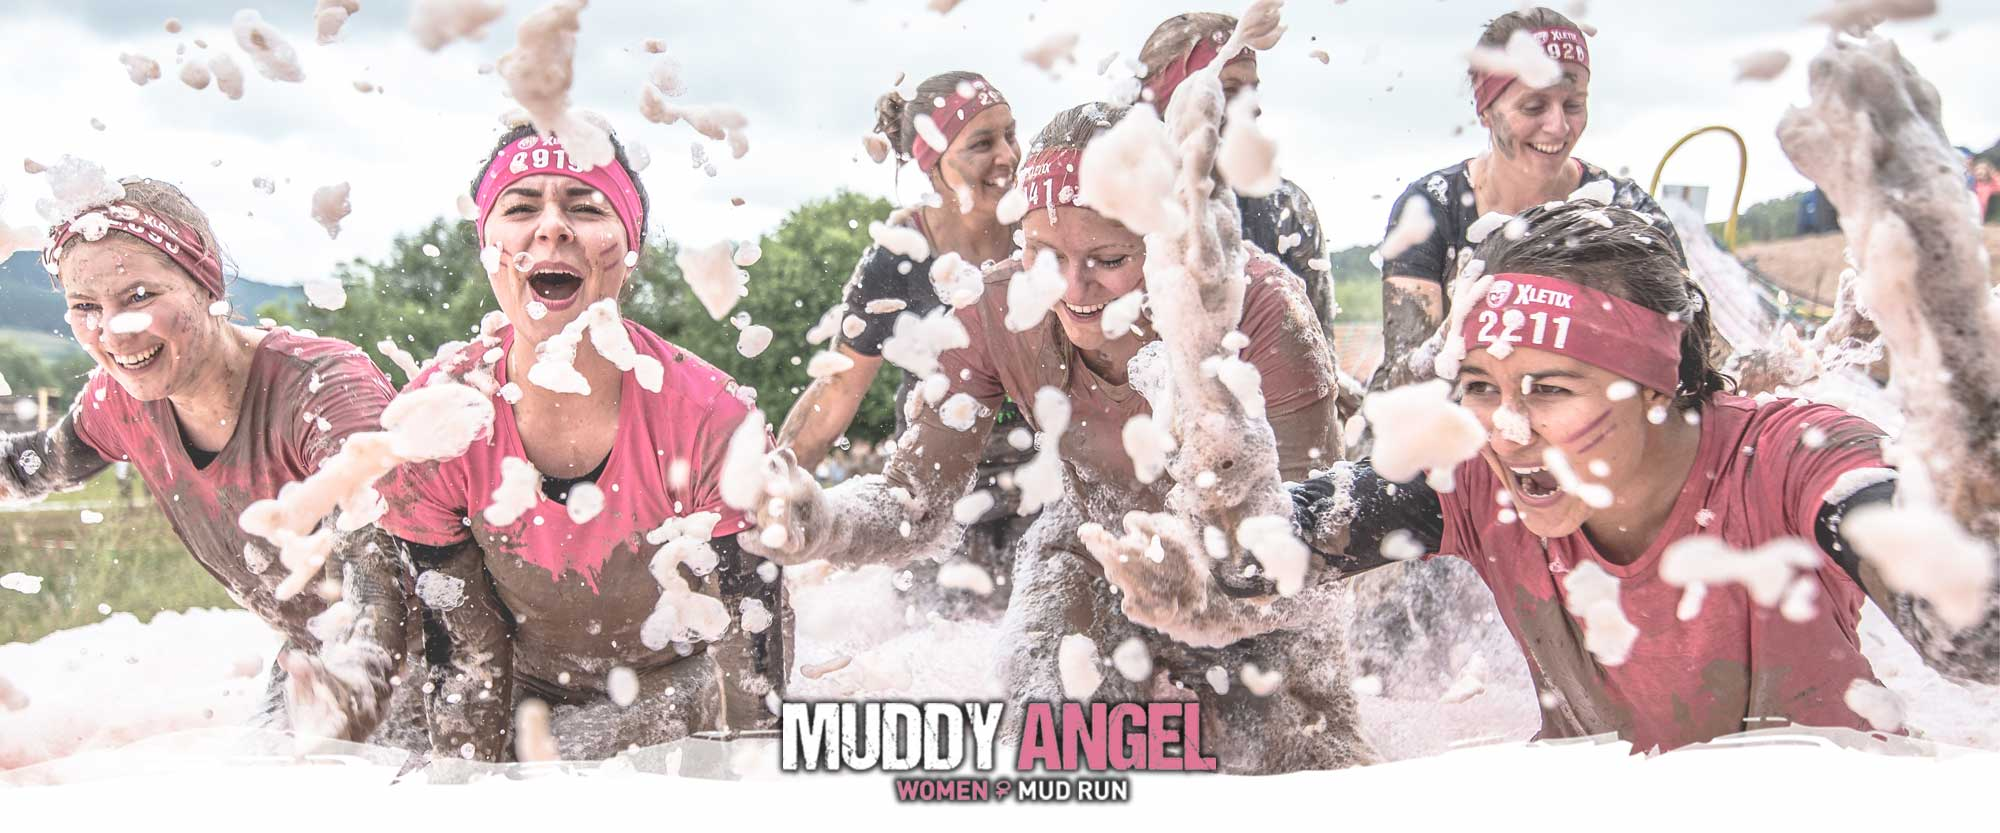 muddy angel run paris obstacle le magazine de la course obstacles en france. Black Bedroom Furniture Sets. Home Design Ideas